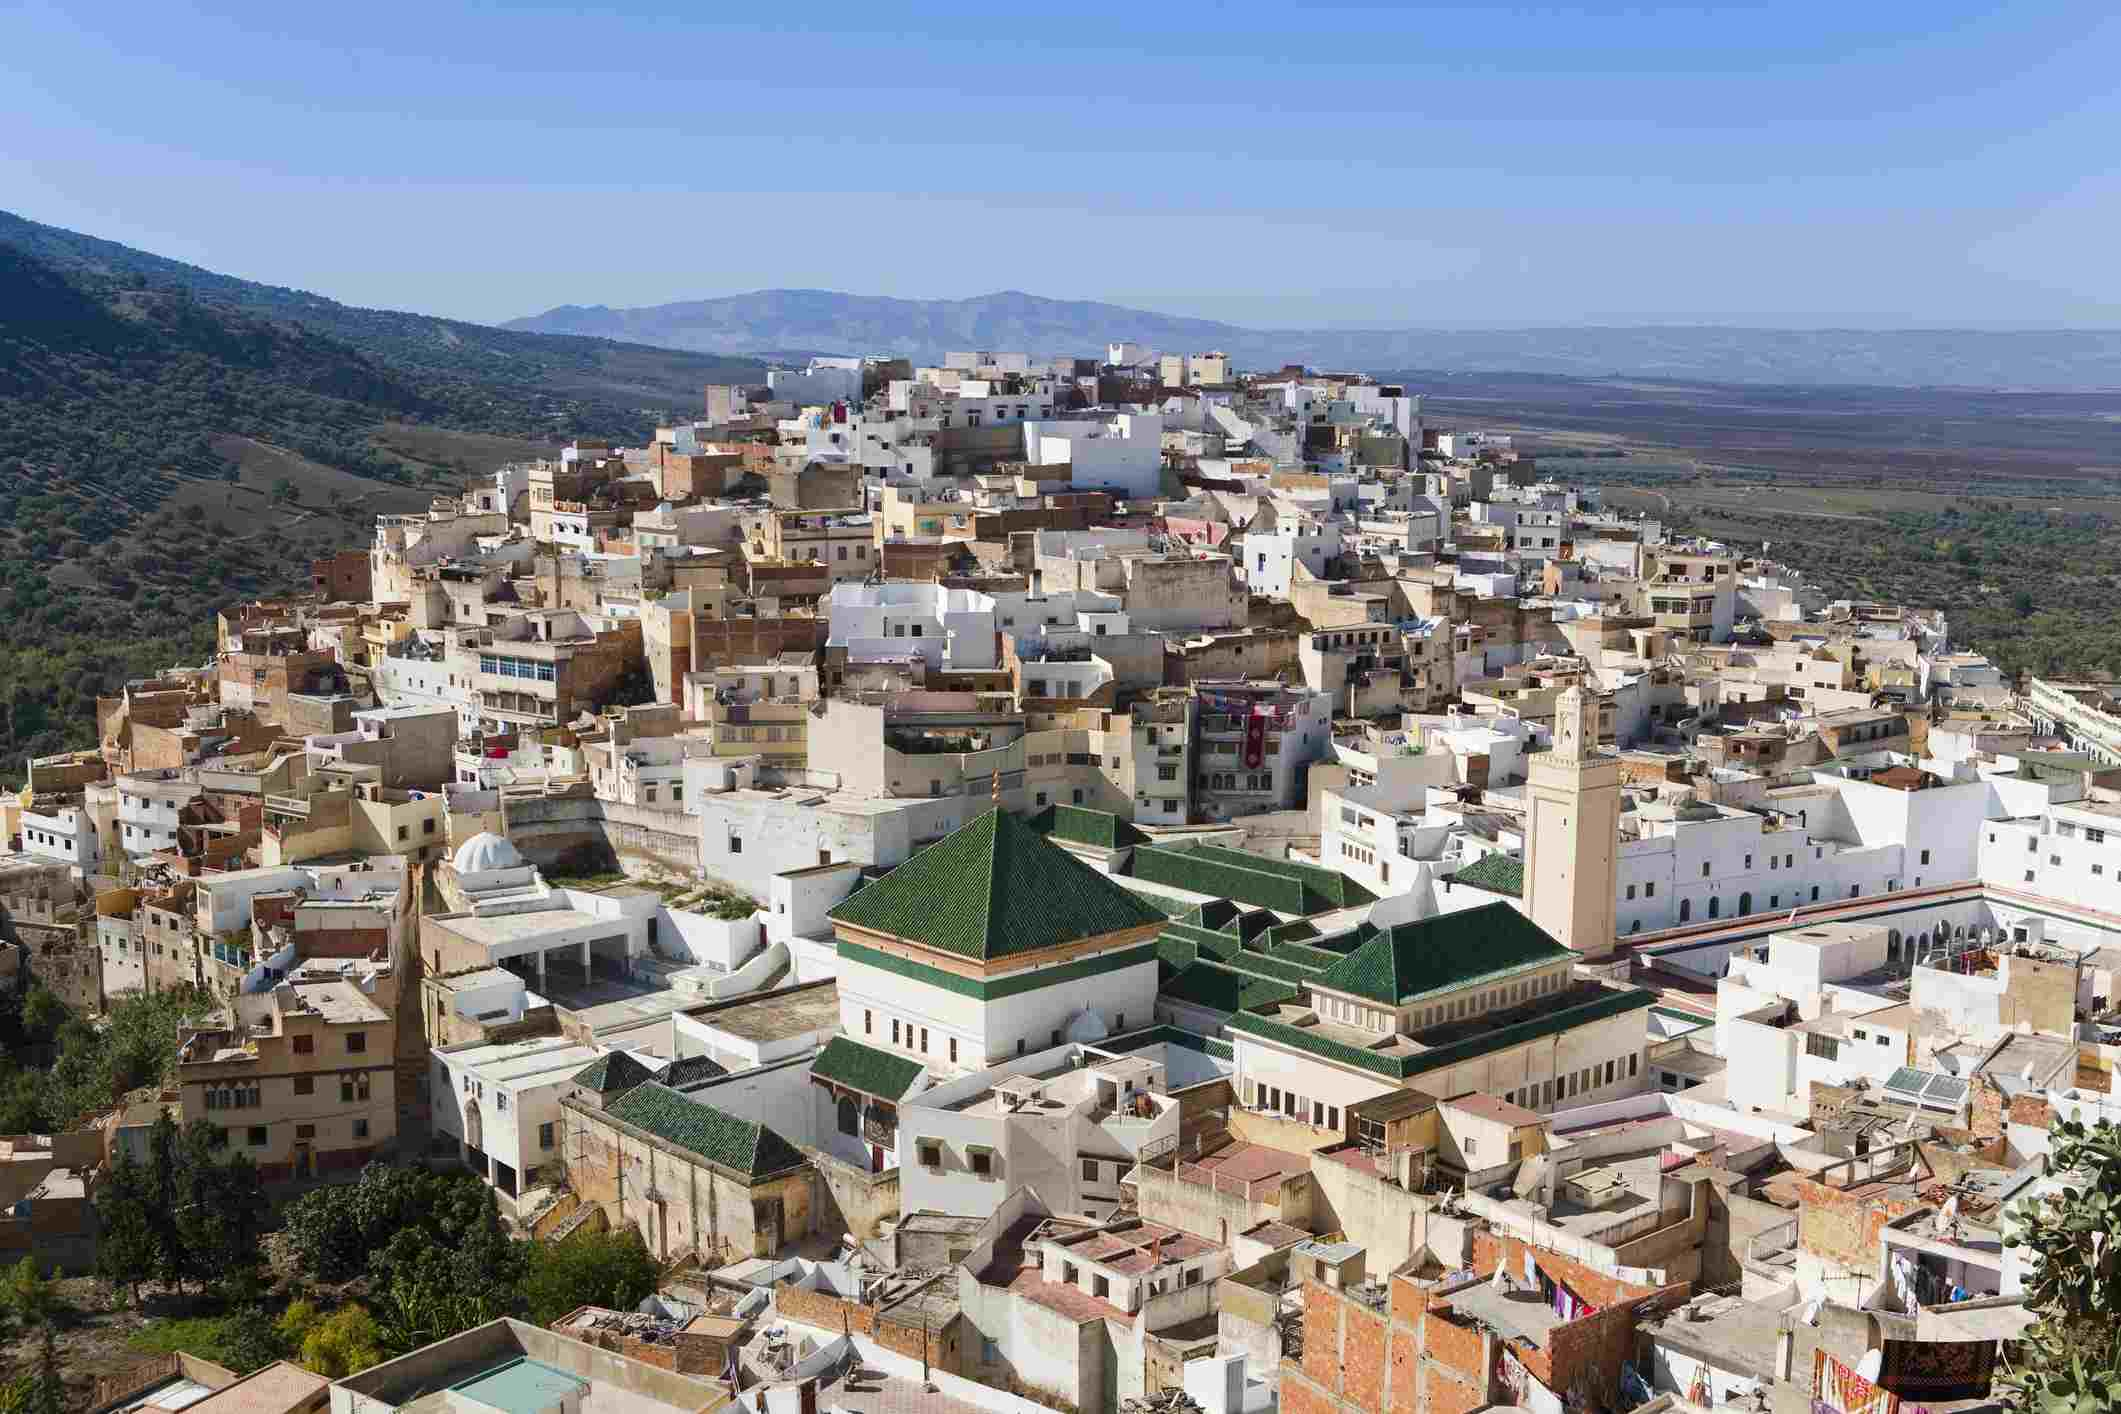 Mountain town of Moulay Idriss near Volubilis and Meknes